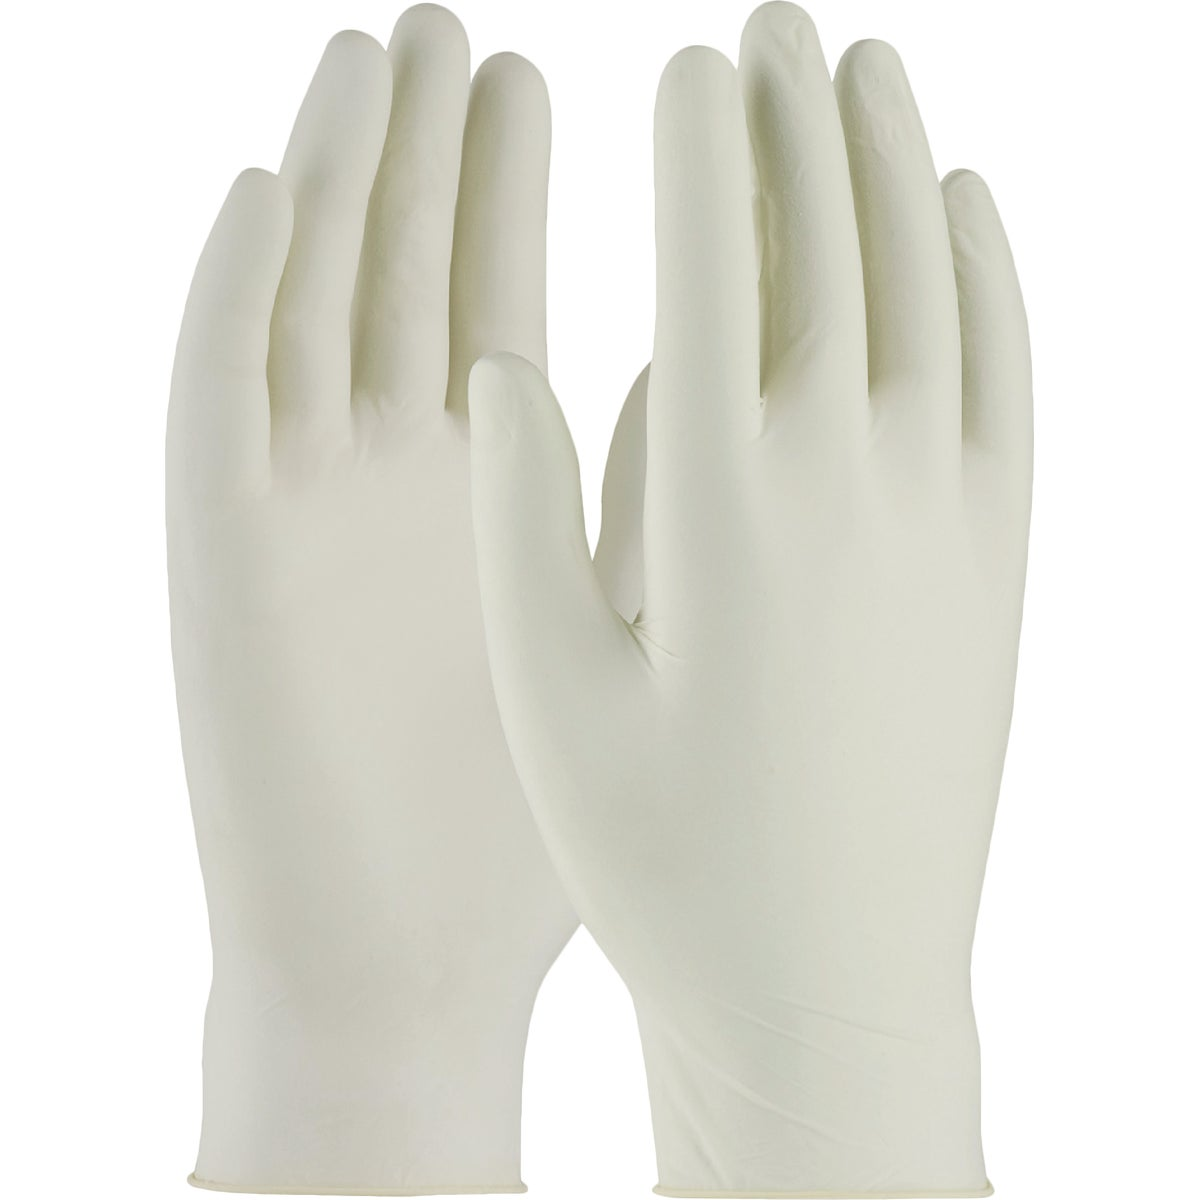 LG POWDERED LATEX GLOVES - 2500I/L by West Chester Incom